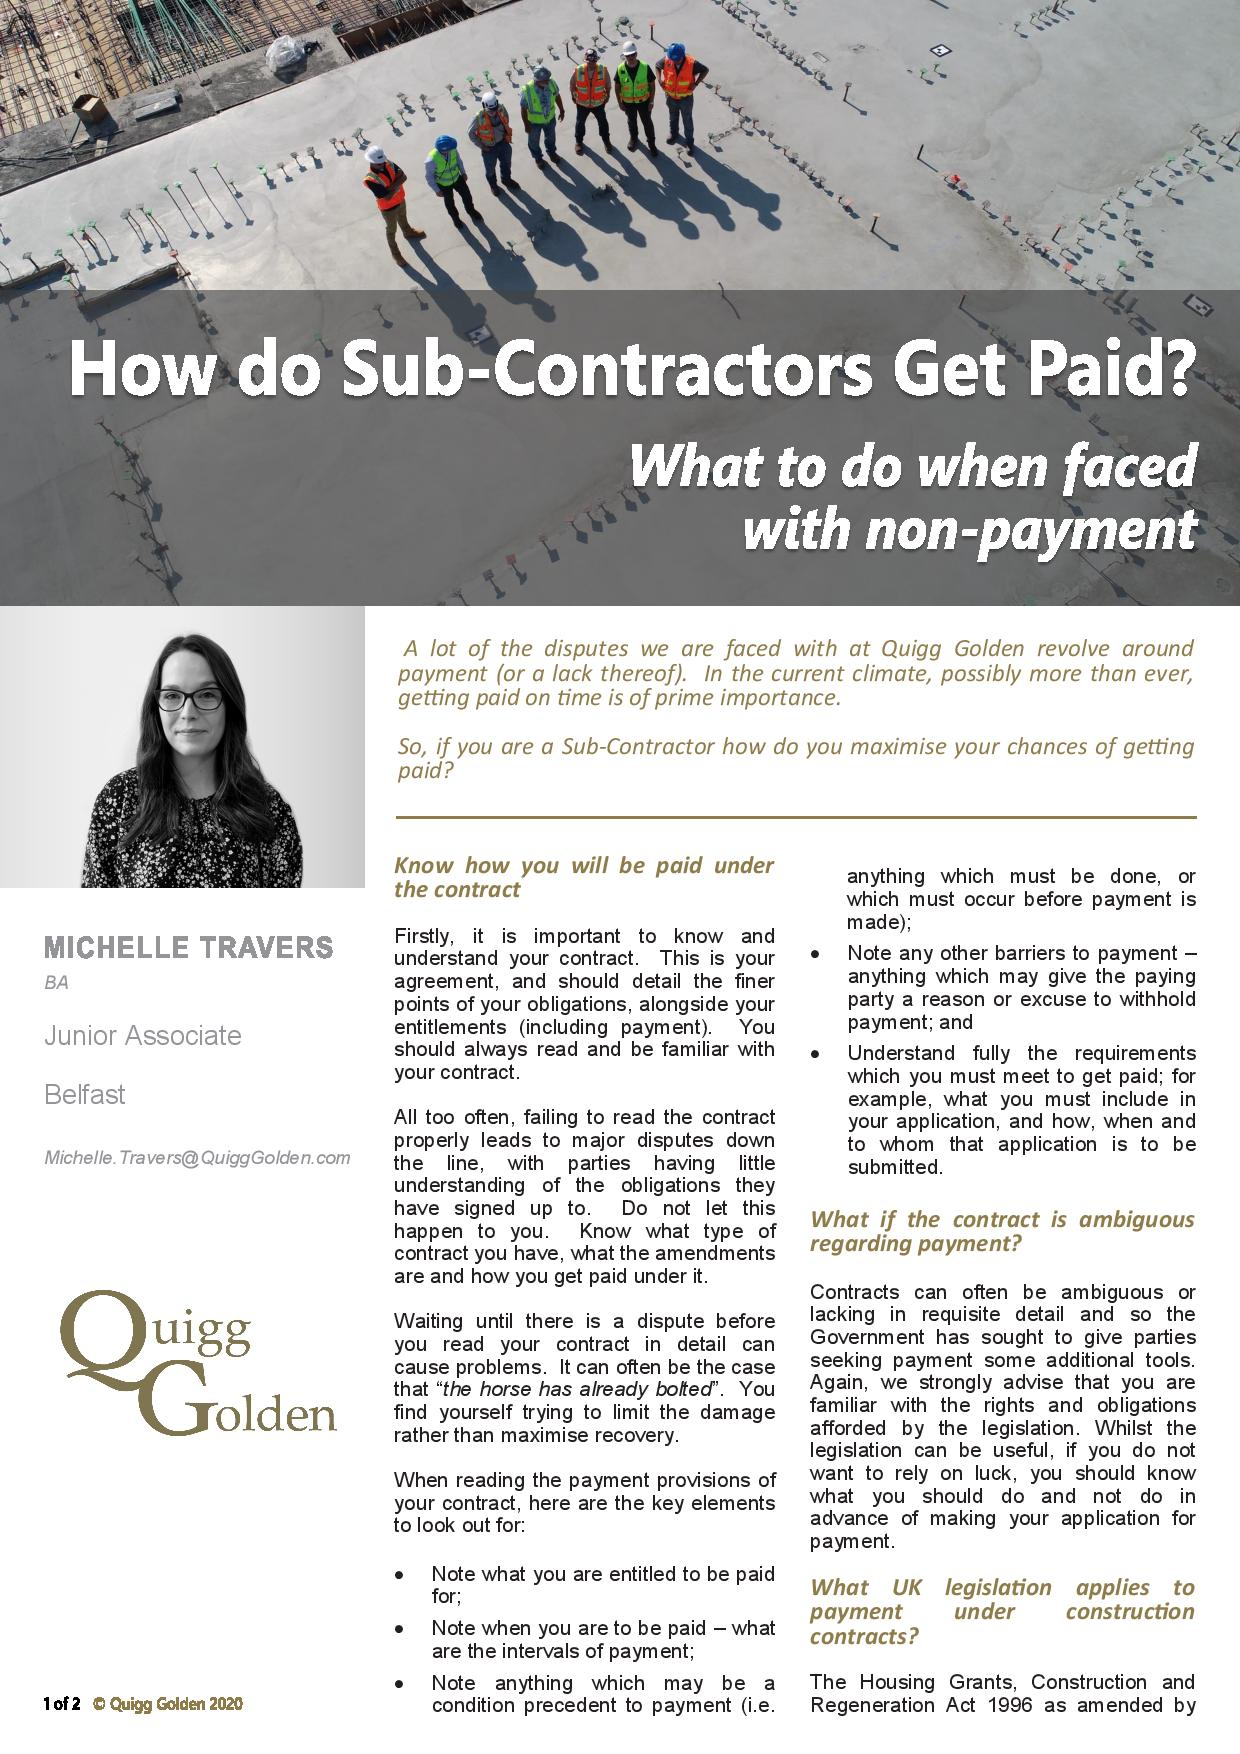 How do Sub-Contractors get paid? What to do when faced with non-payment